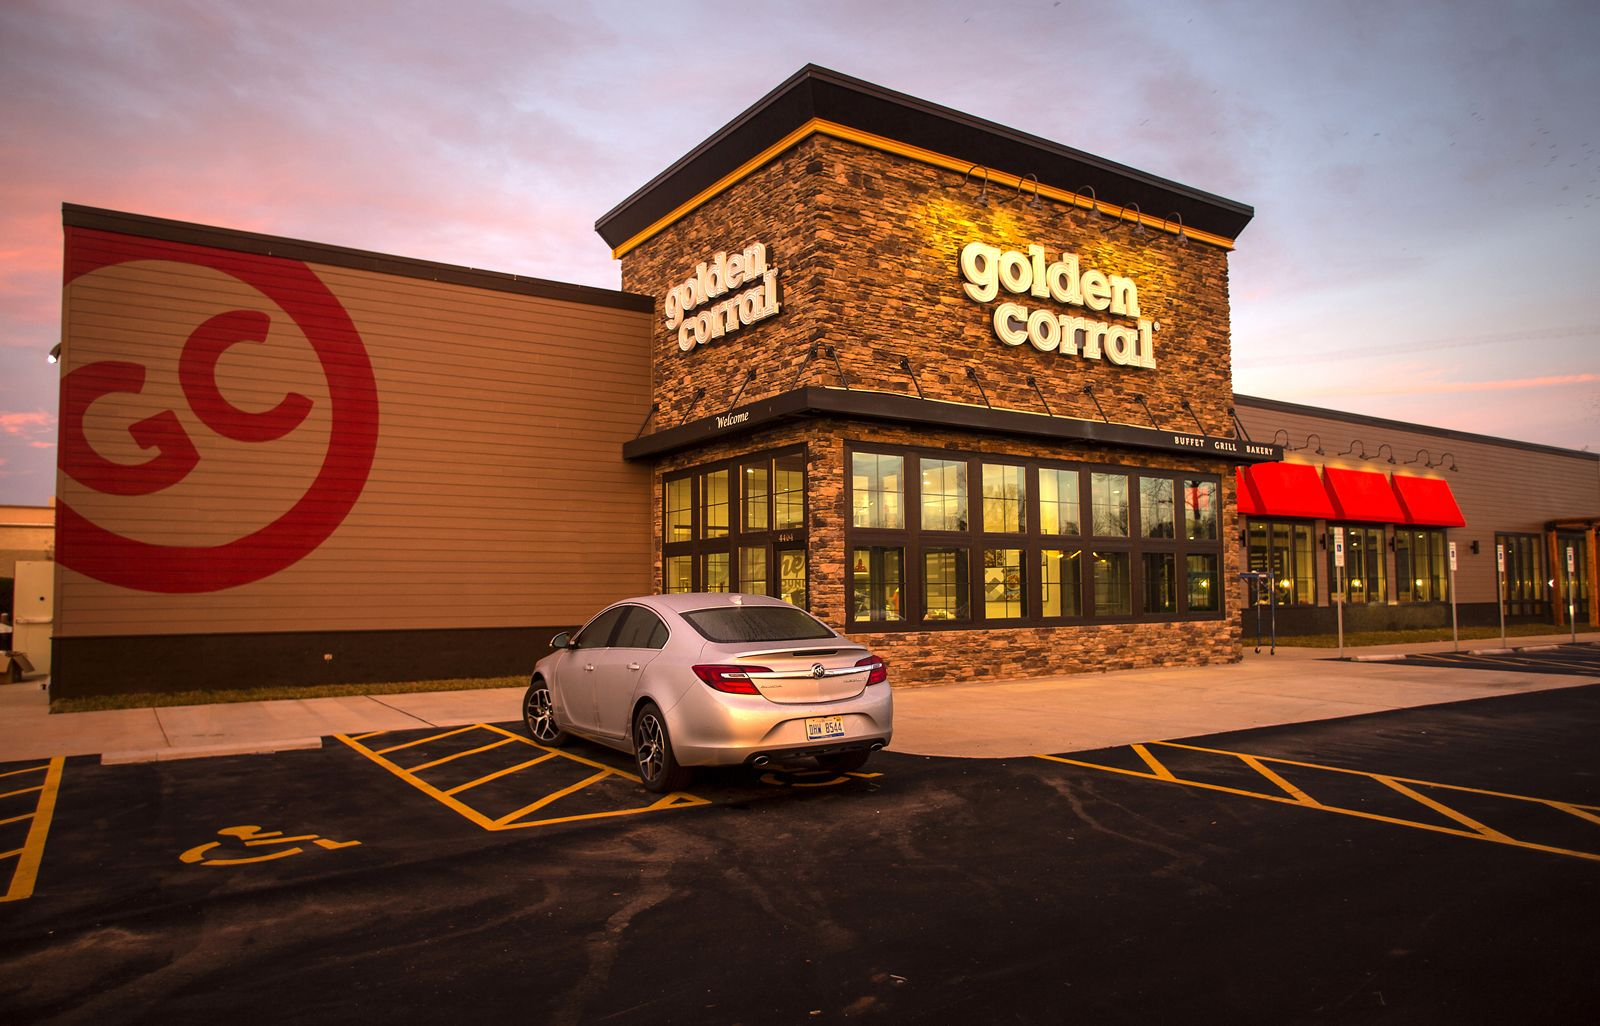 Golden Corral Celebrates Grand Reopening in Lake Charles